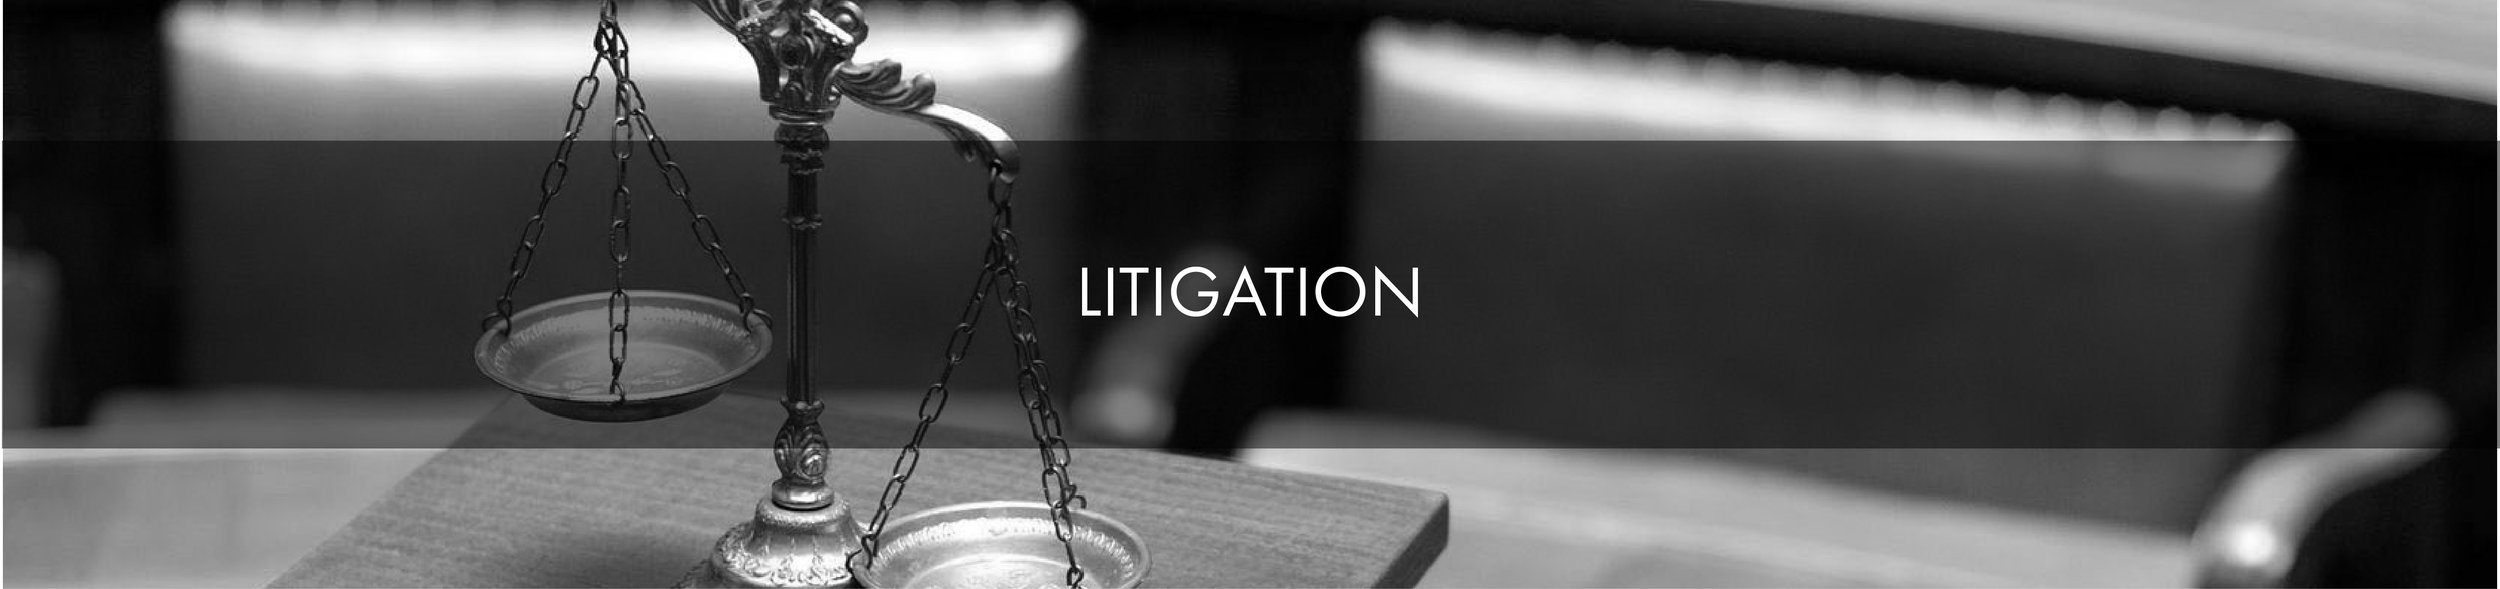 Block45-denver-litigation-lawyer.jpg